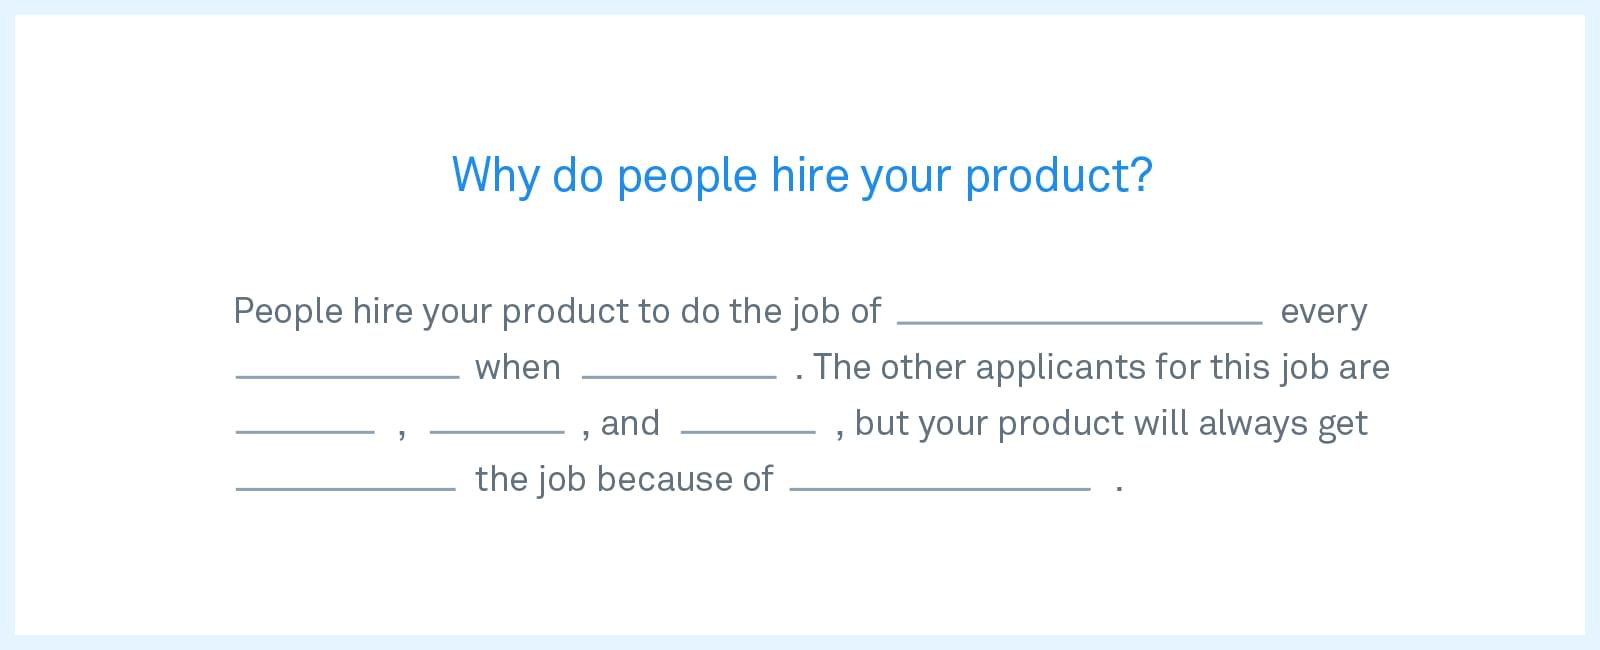 Why people hire your product